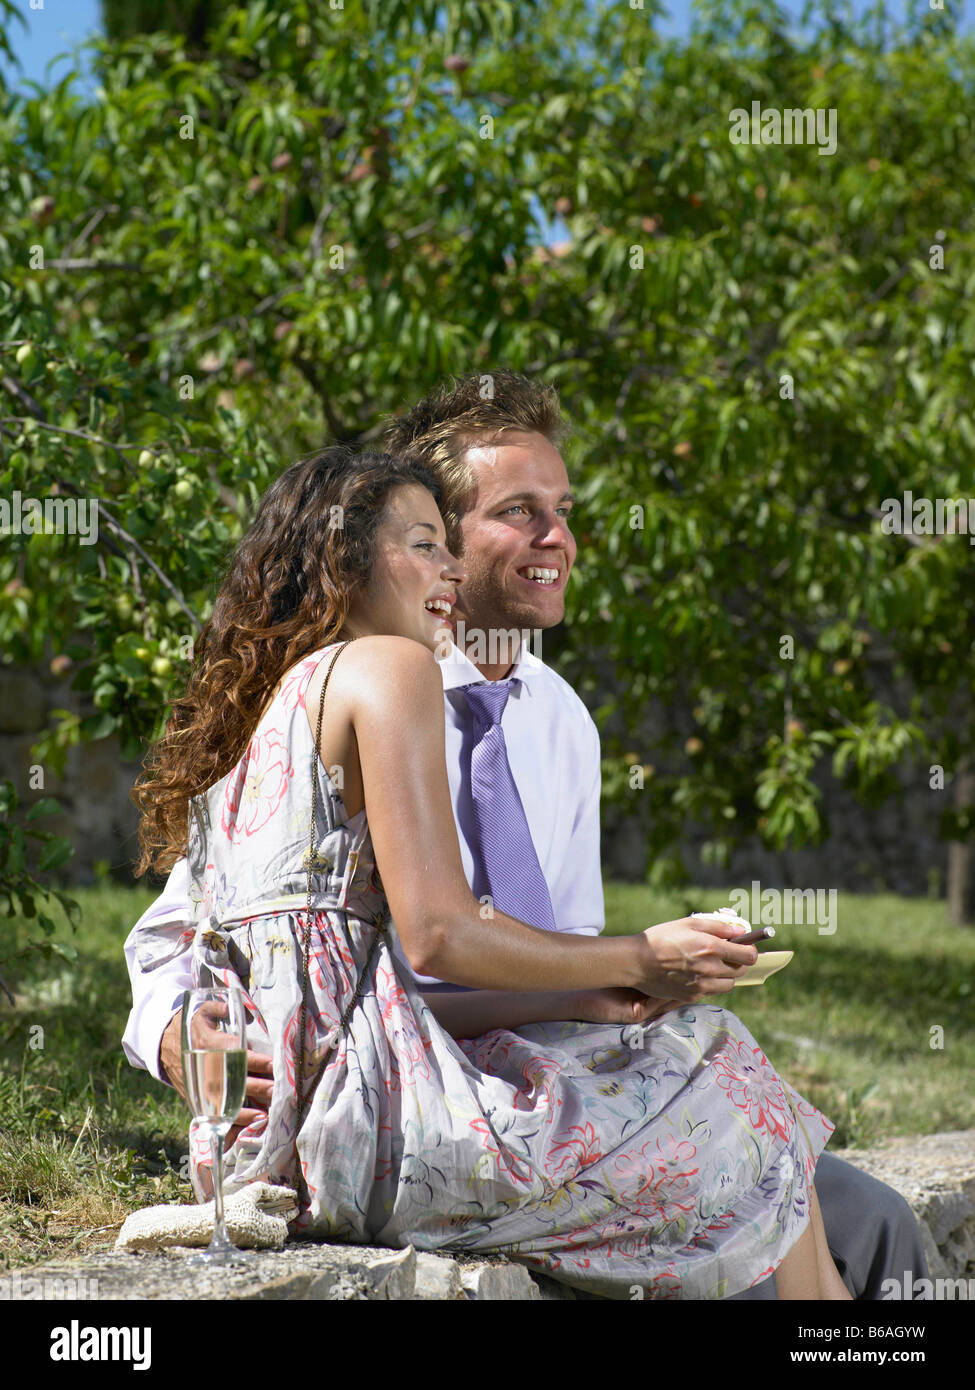 Wedding guests laughing - Stock Image